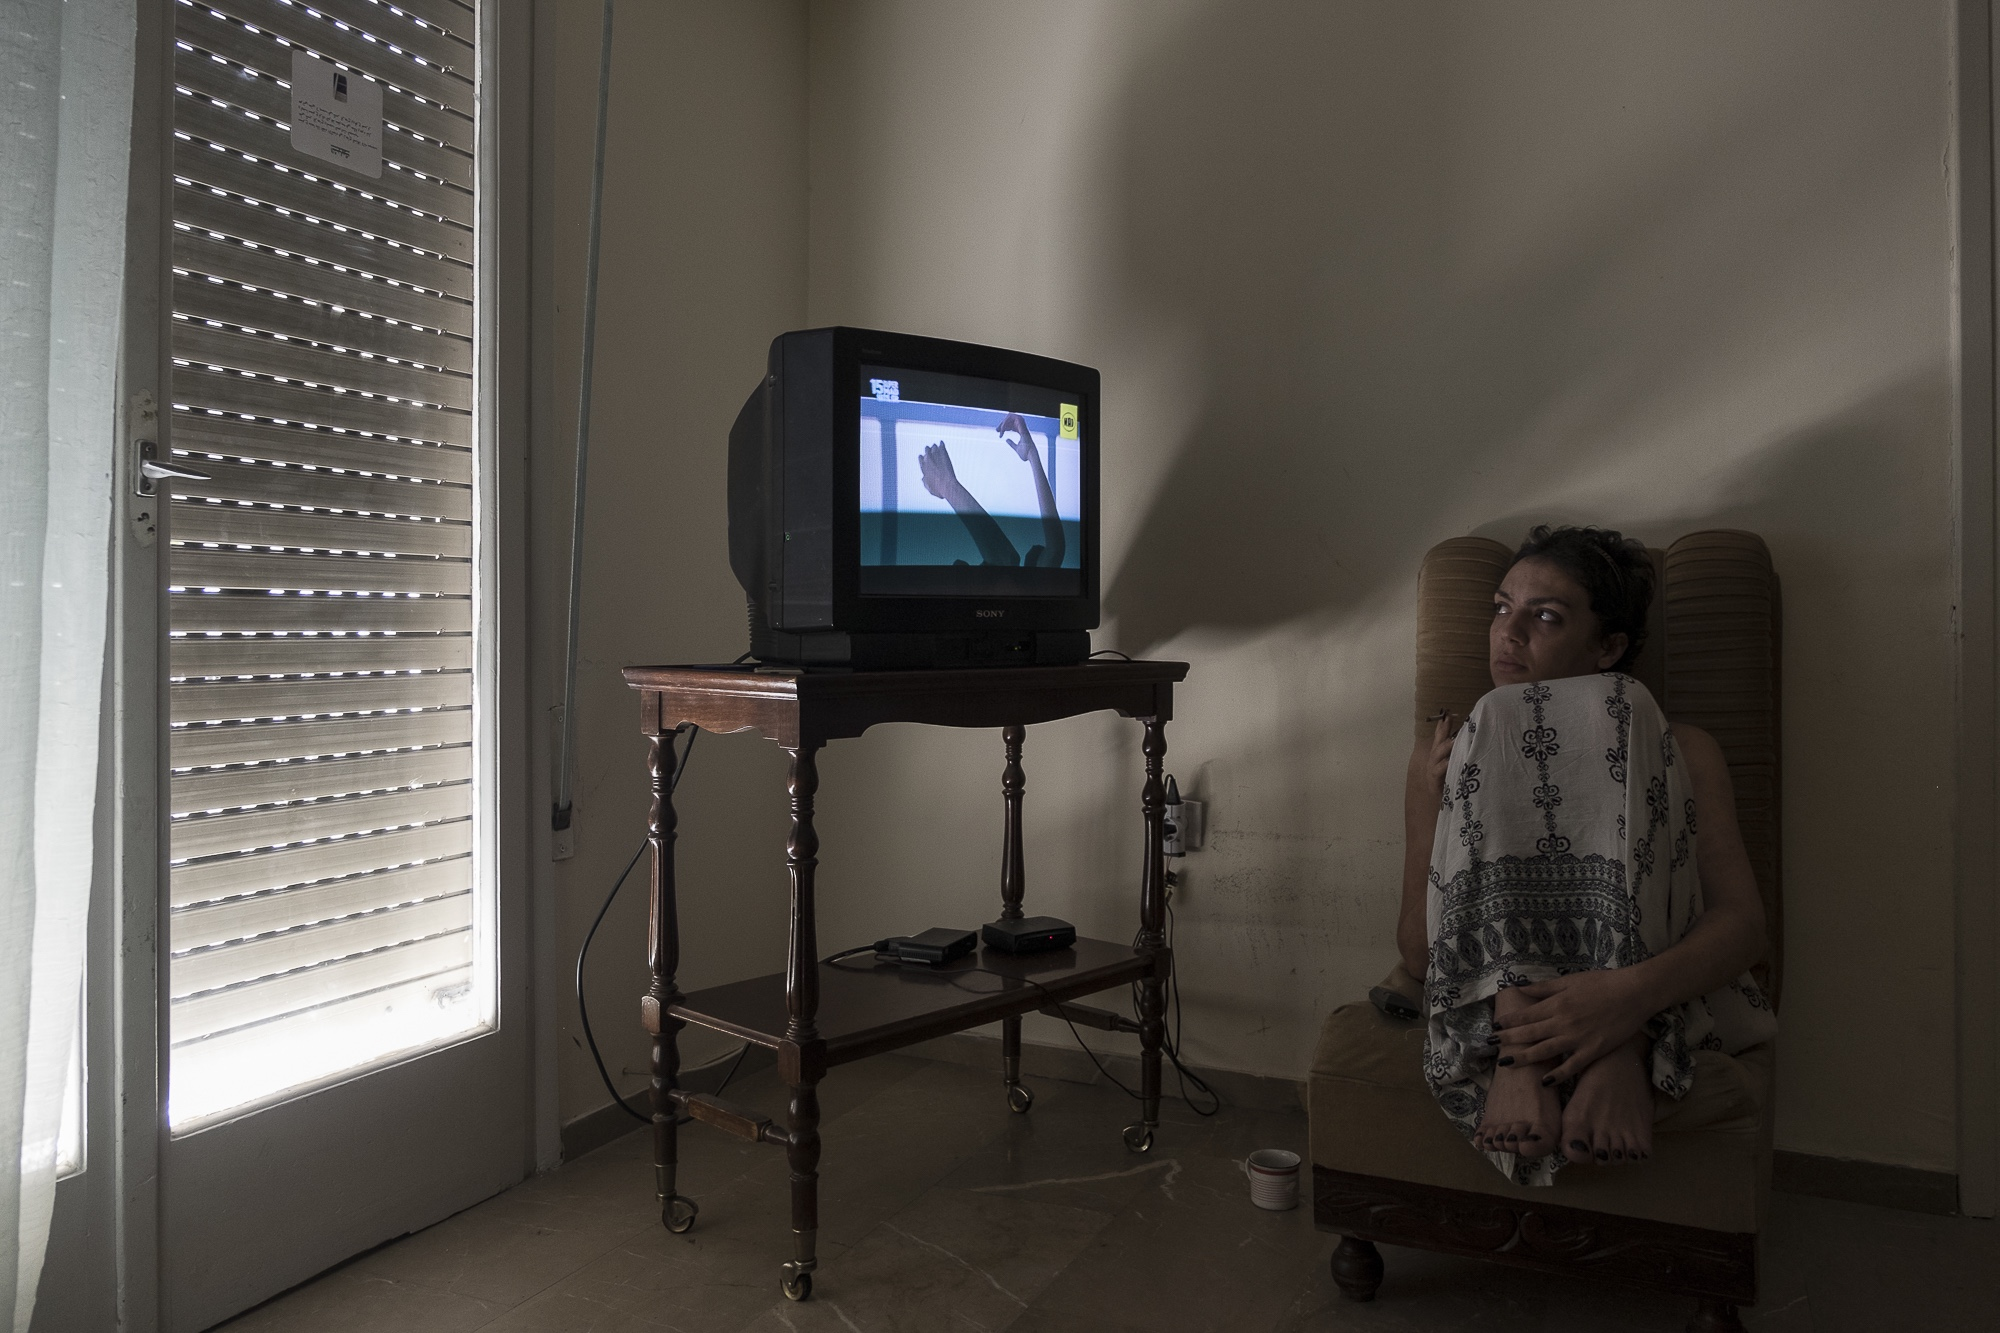 Y., 28, a transgender woman from Morocco watches TV while relaxing at her apartment in Athens, Greece. July 13, 2017